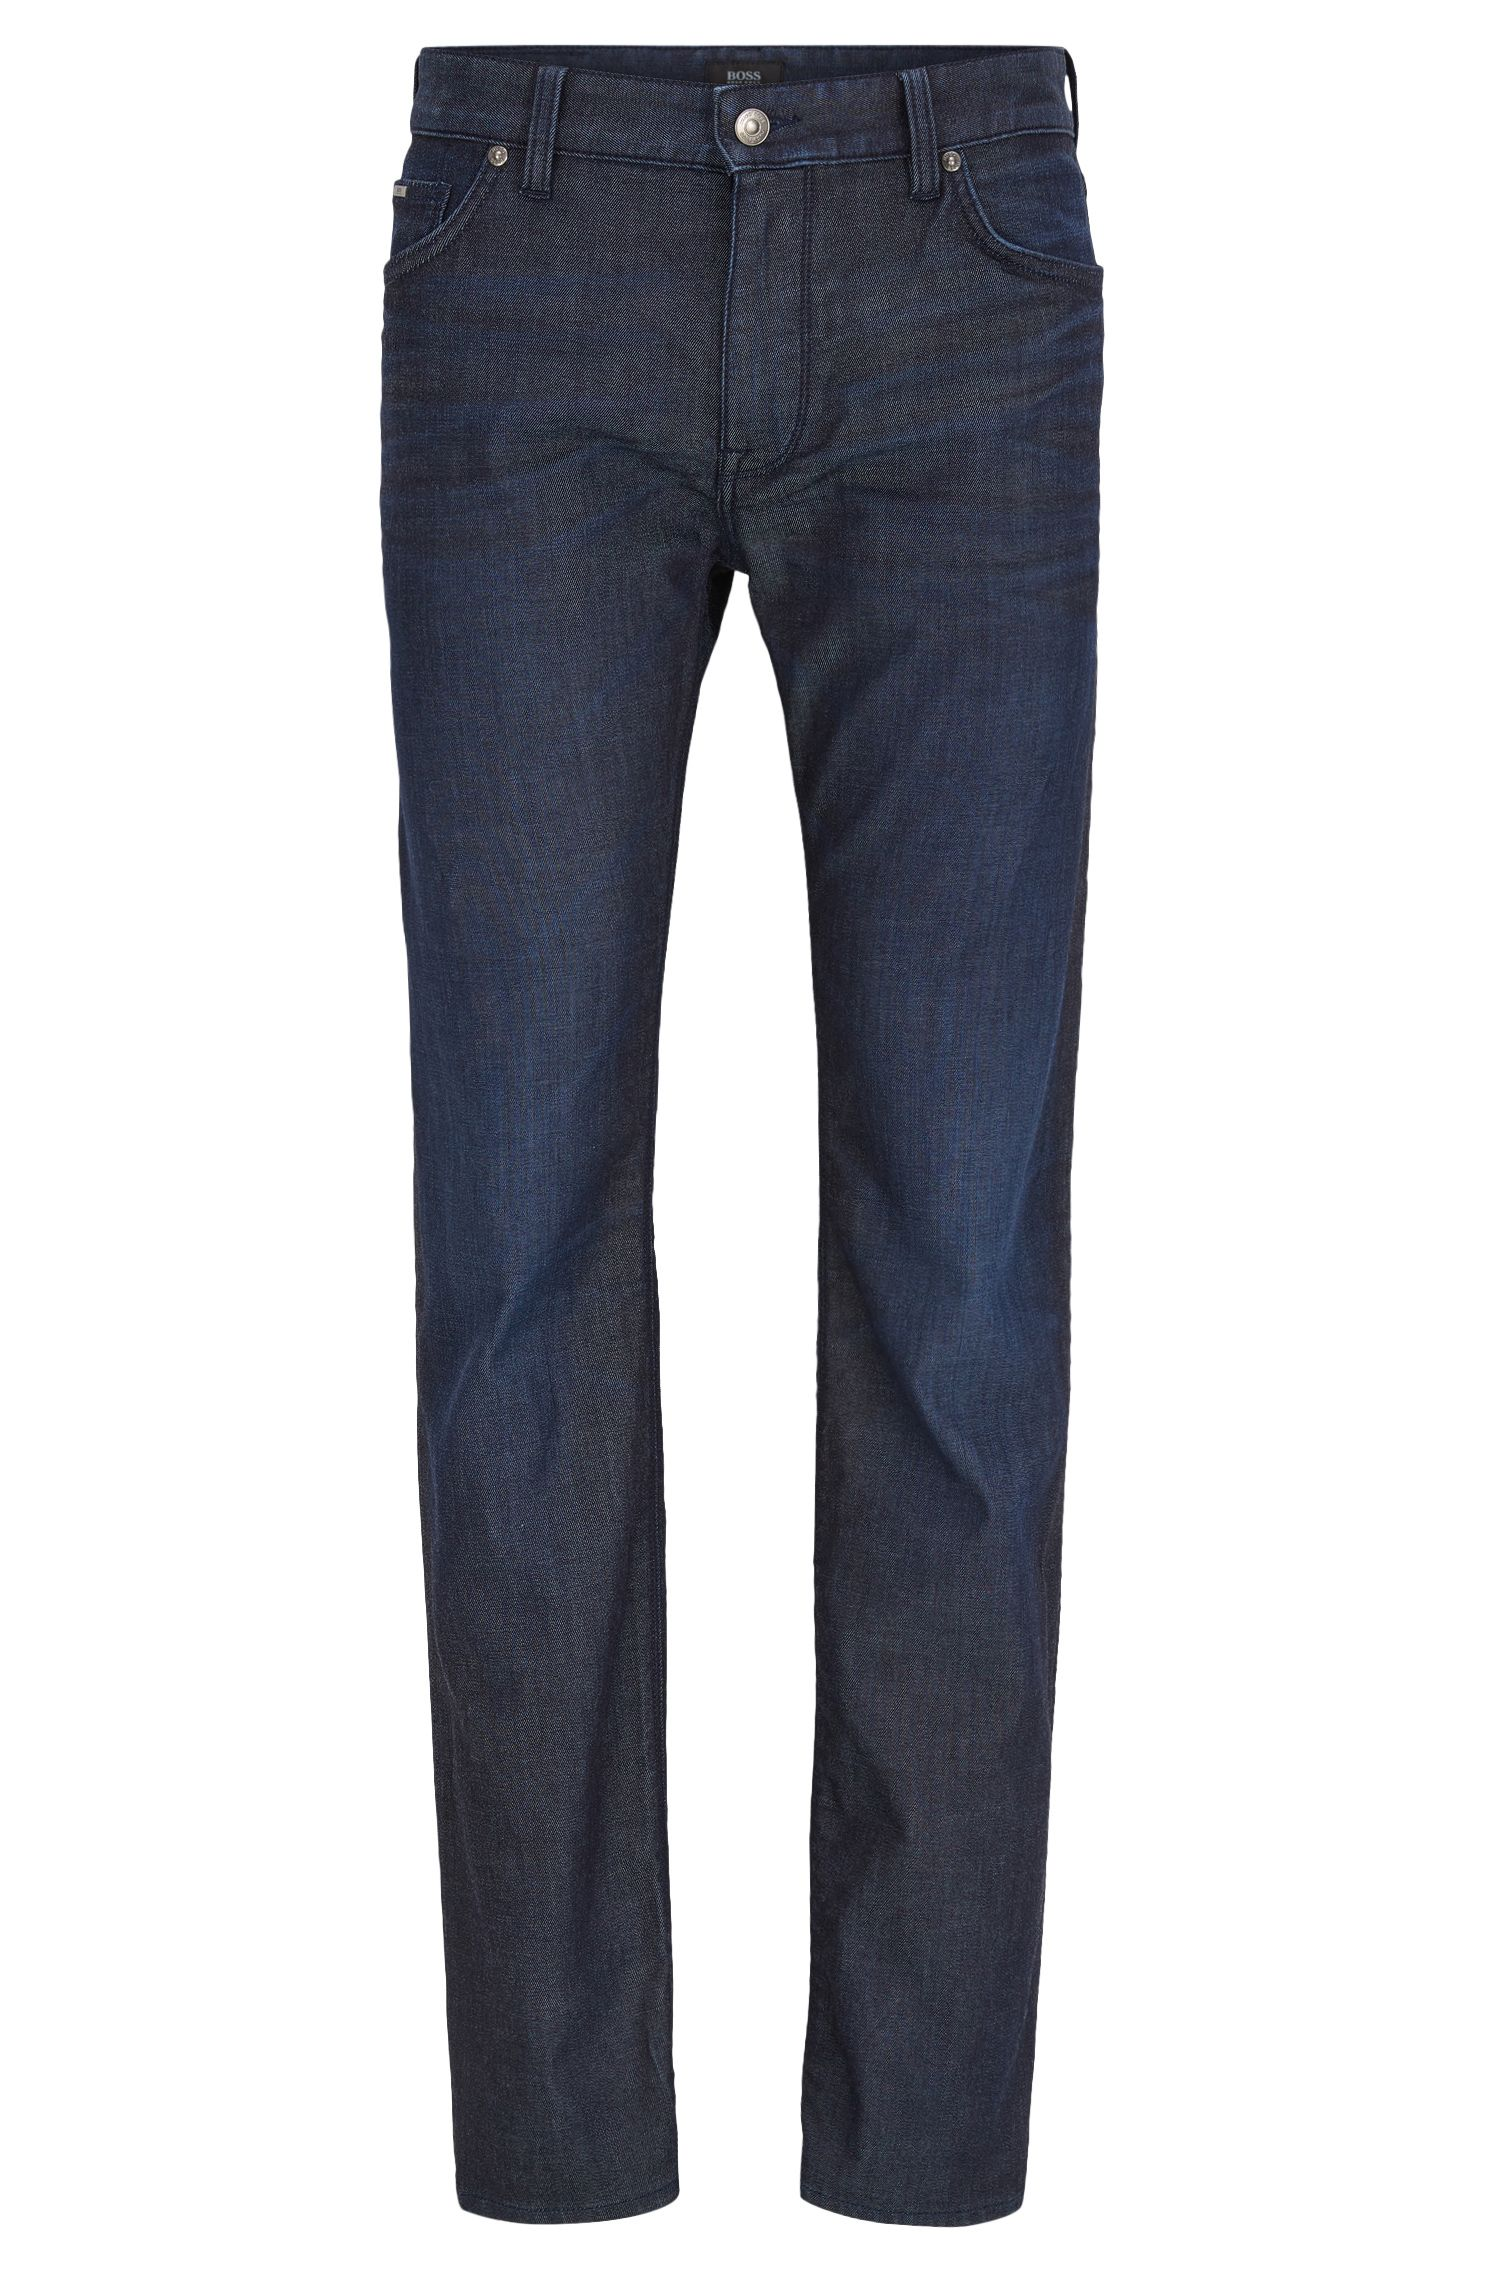 'Maine' | Regular Fit, 8.5 oz Stretch Cotton Jeans